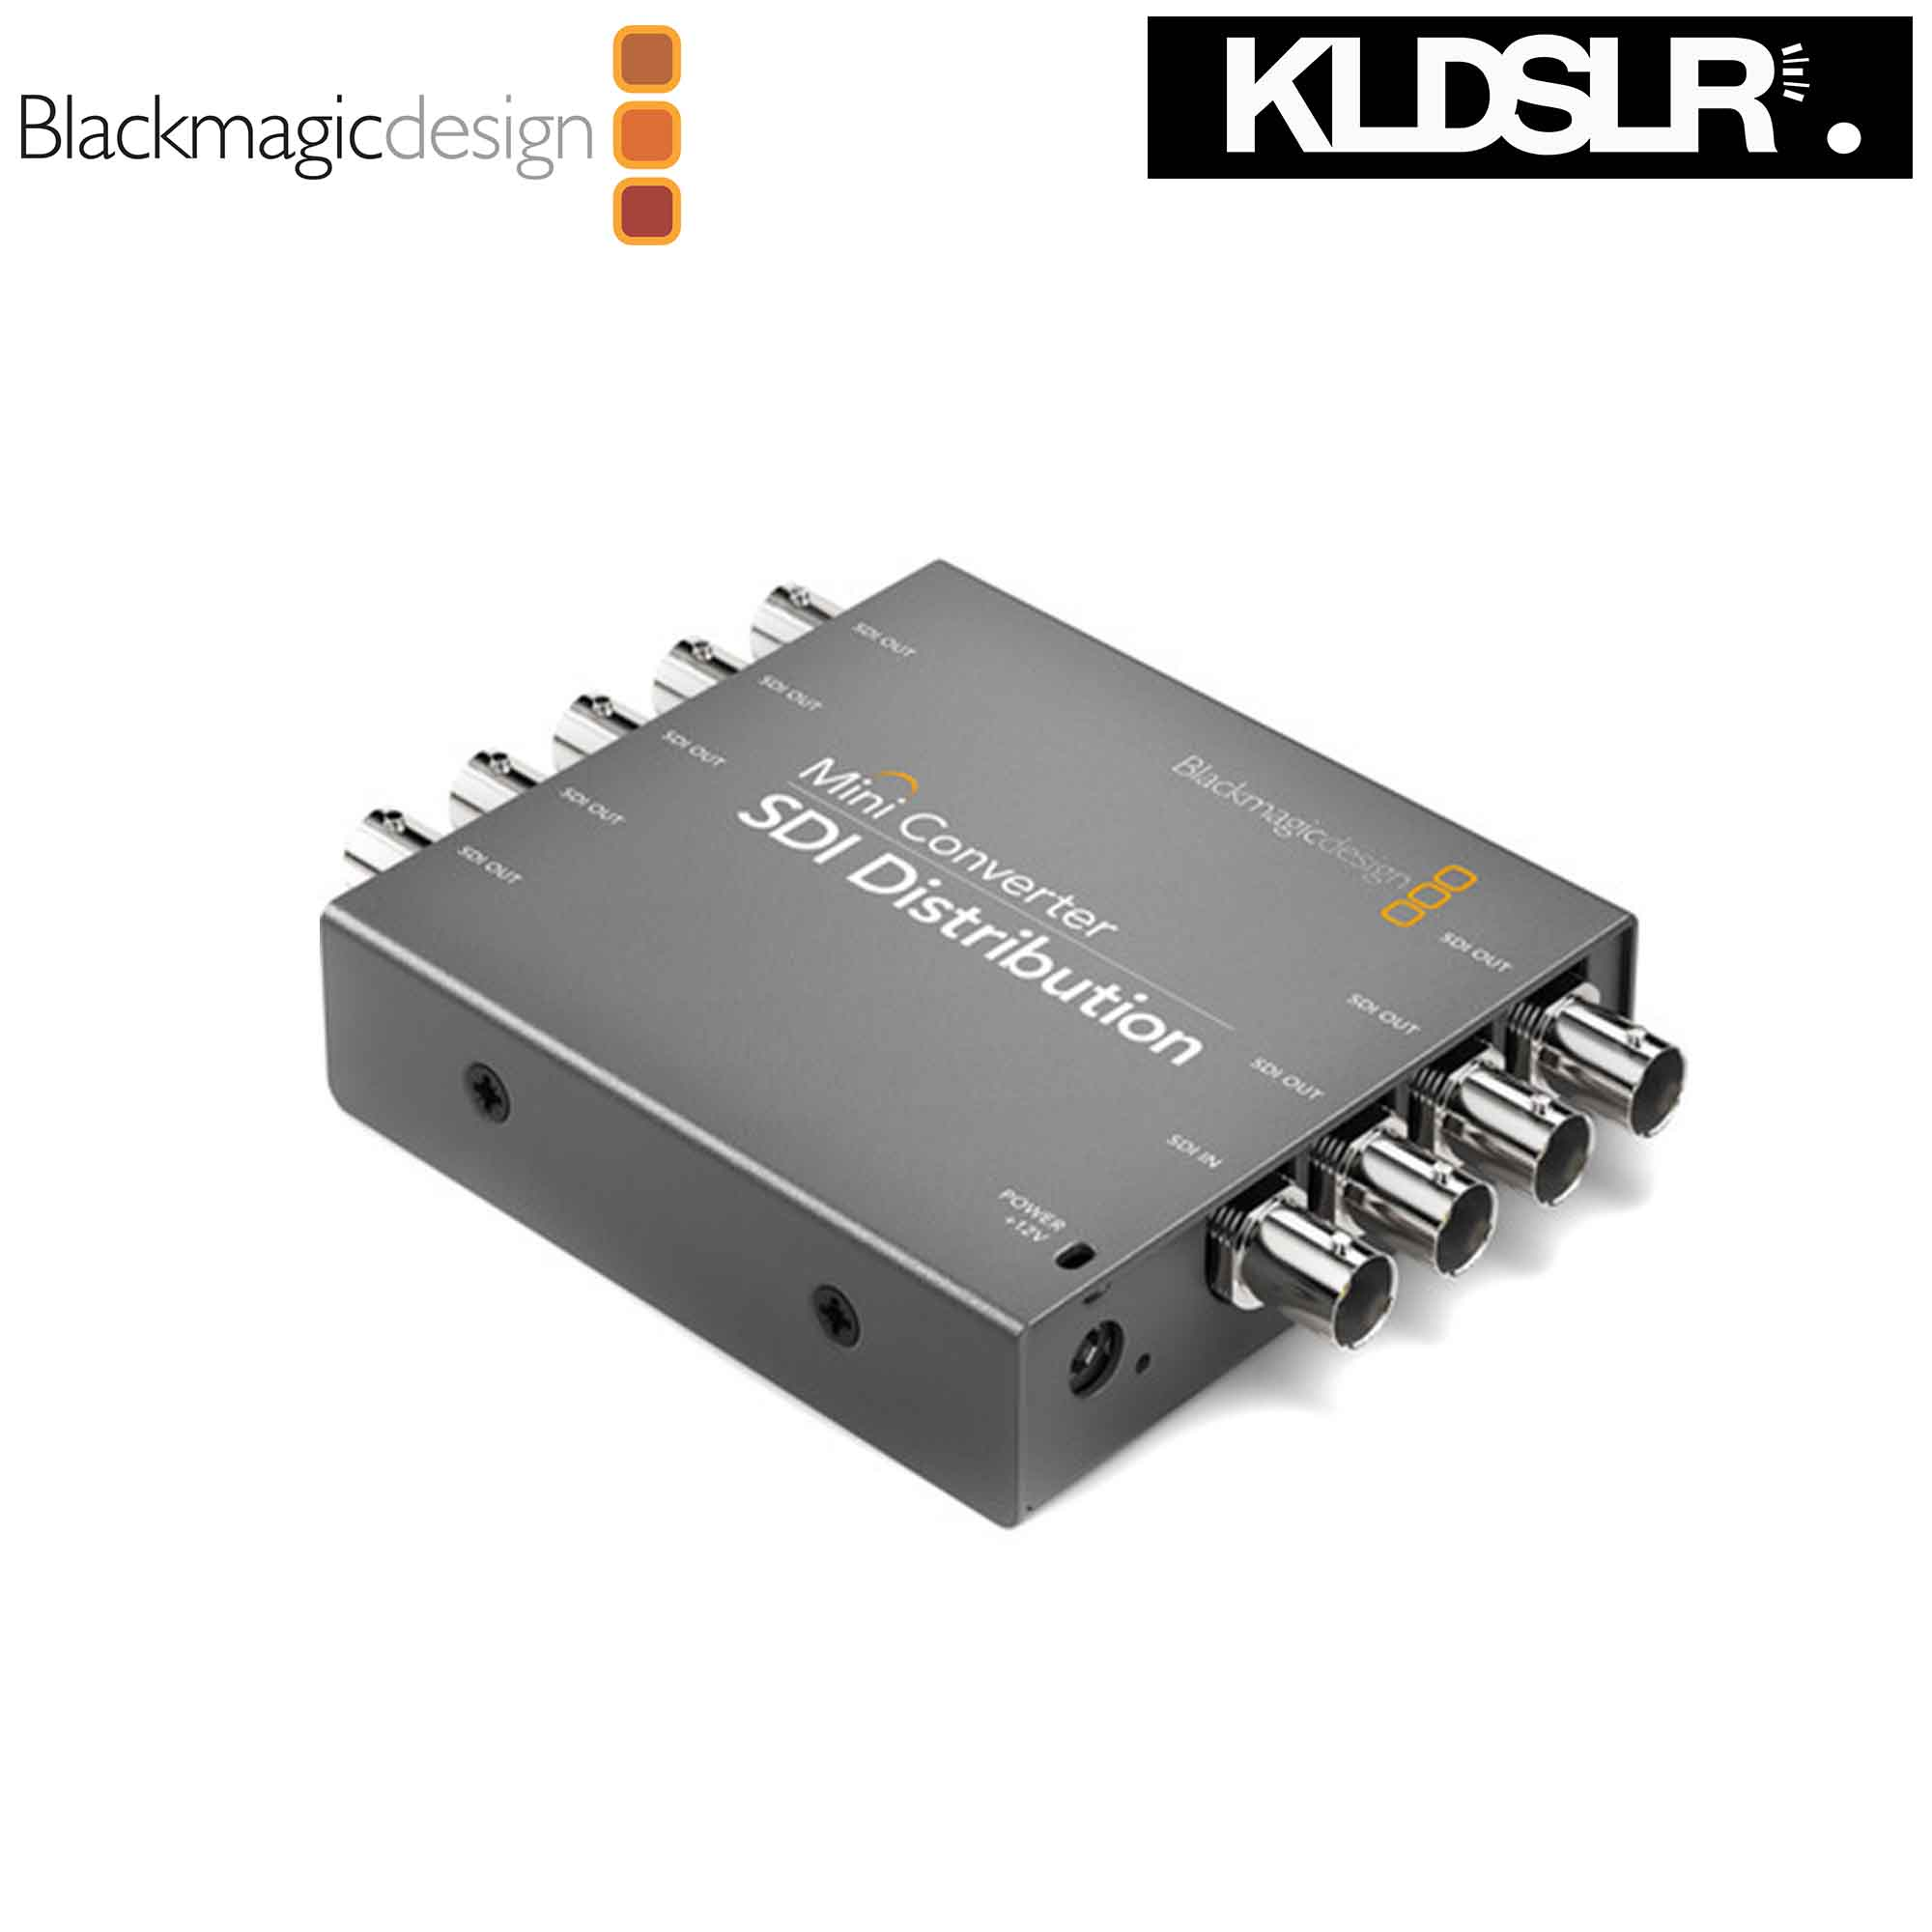 Blackmagic Design Mini Converter SDI Distribution (Black Magic Malaysia)